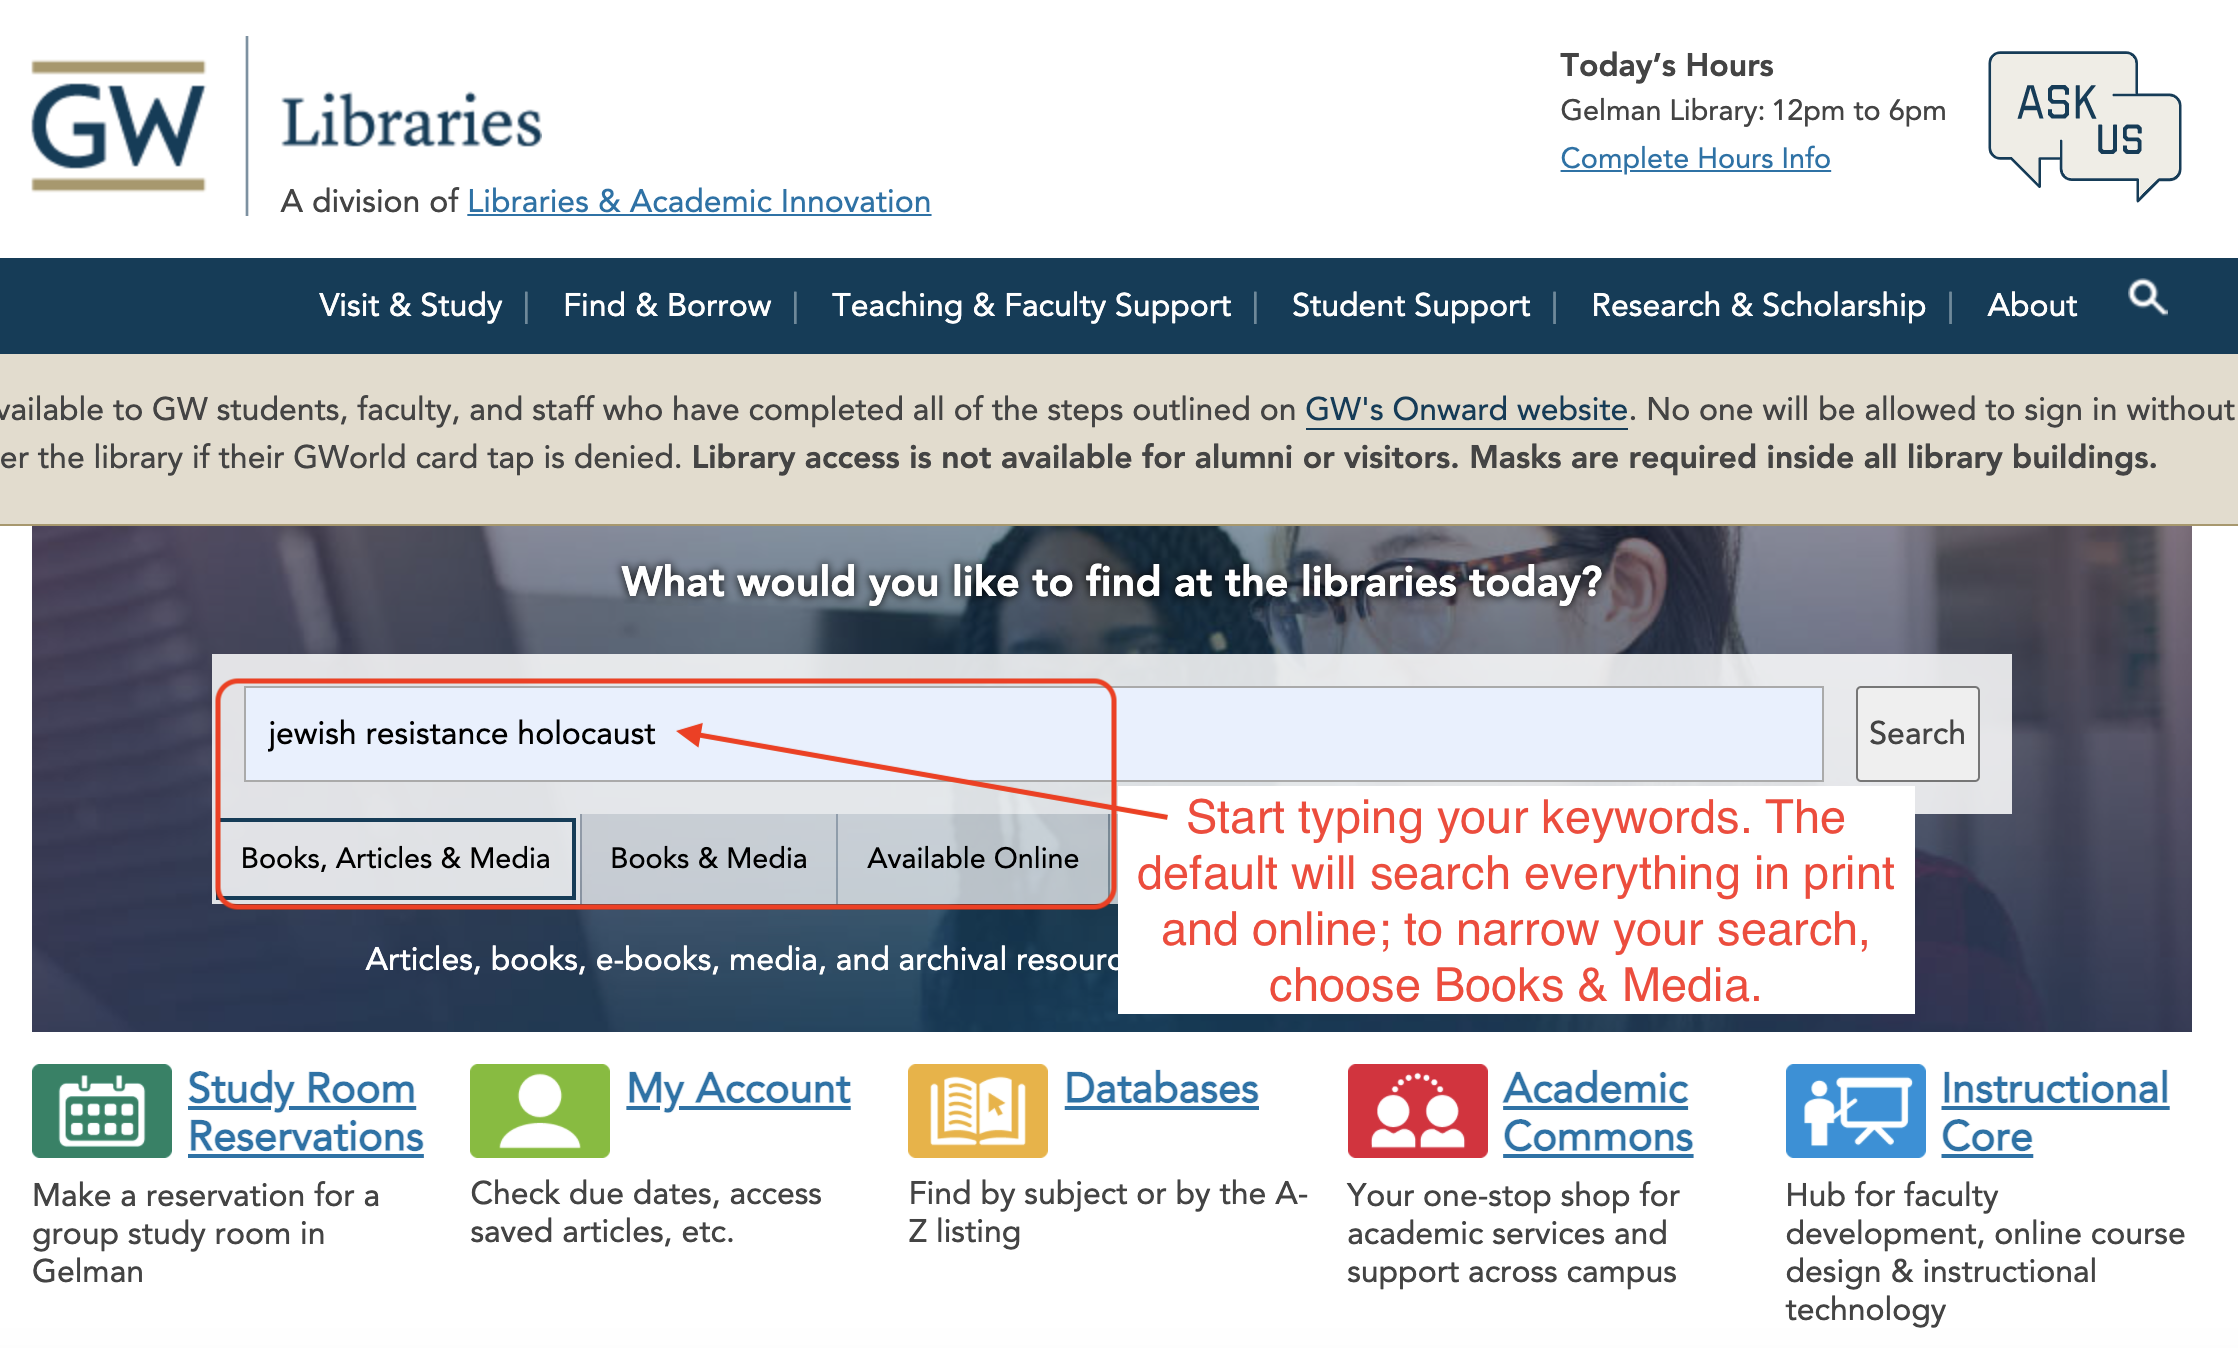 Library catalog search box with tips for searching.